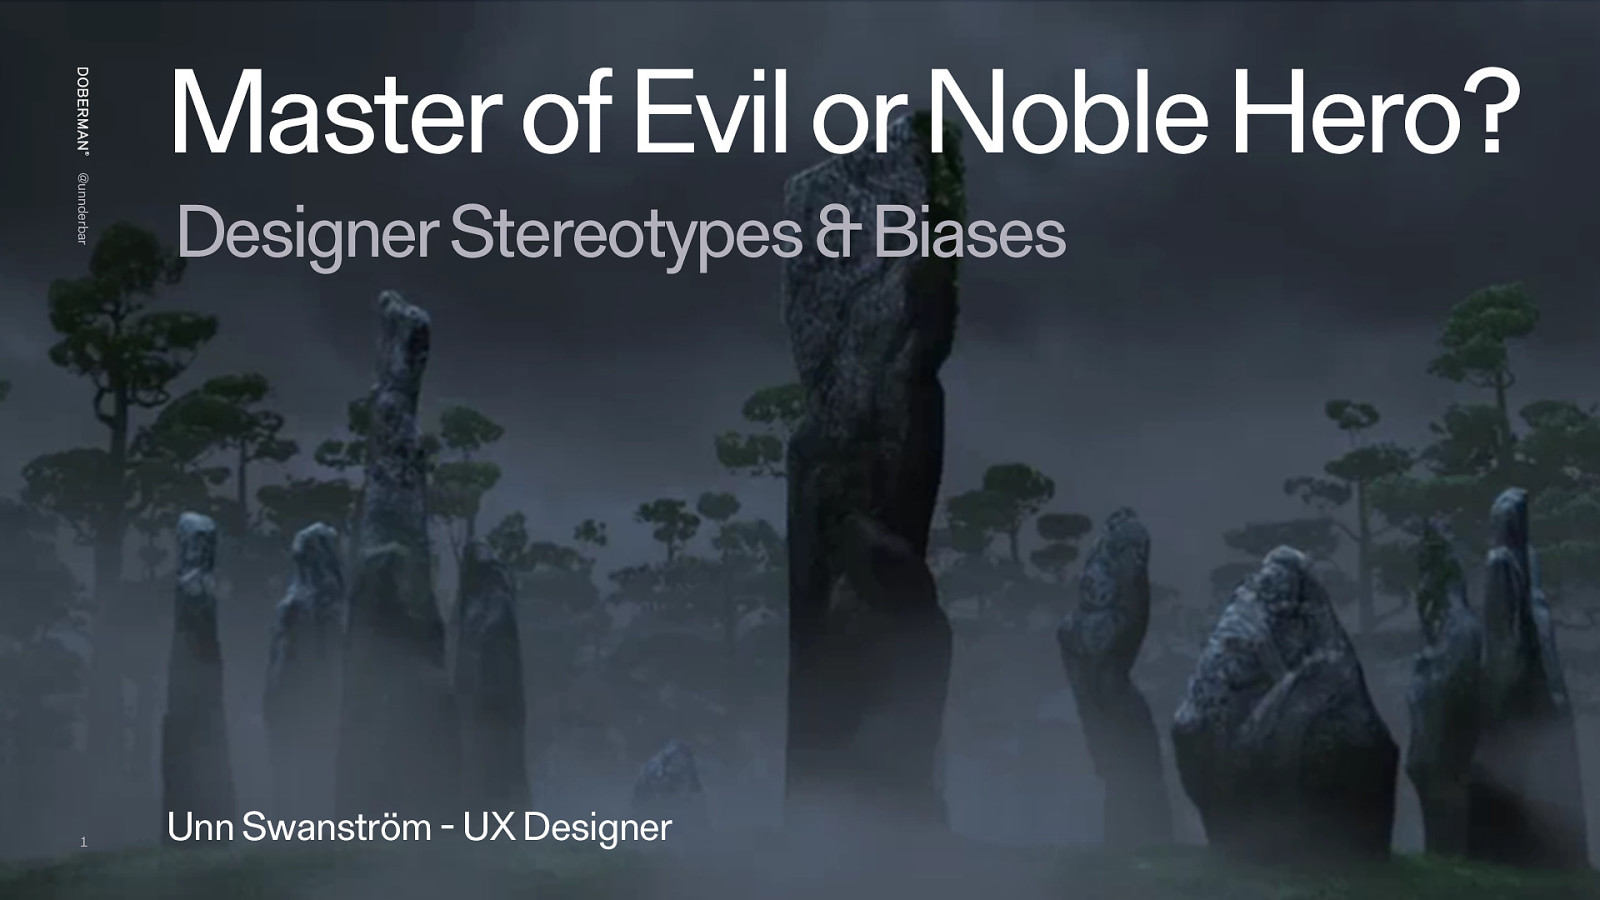 Master of Evil or Noble Hero? - Designer stereotypes and biases